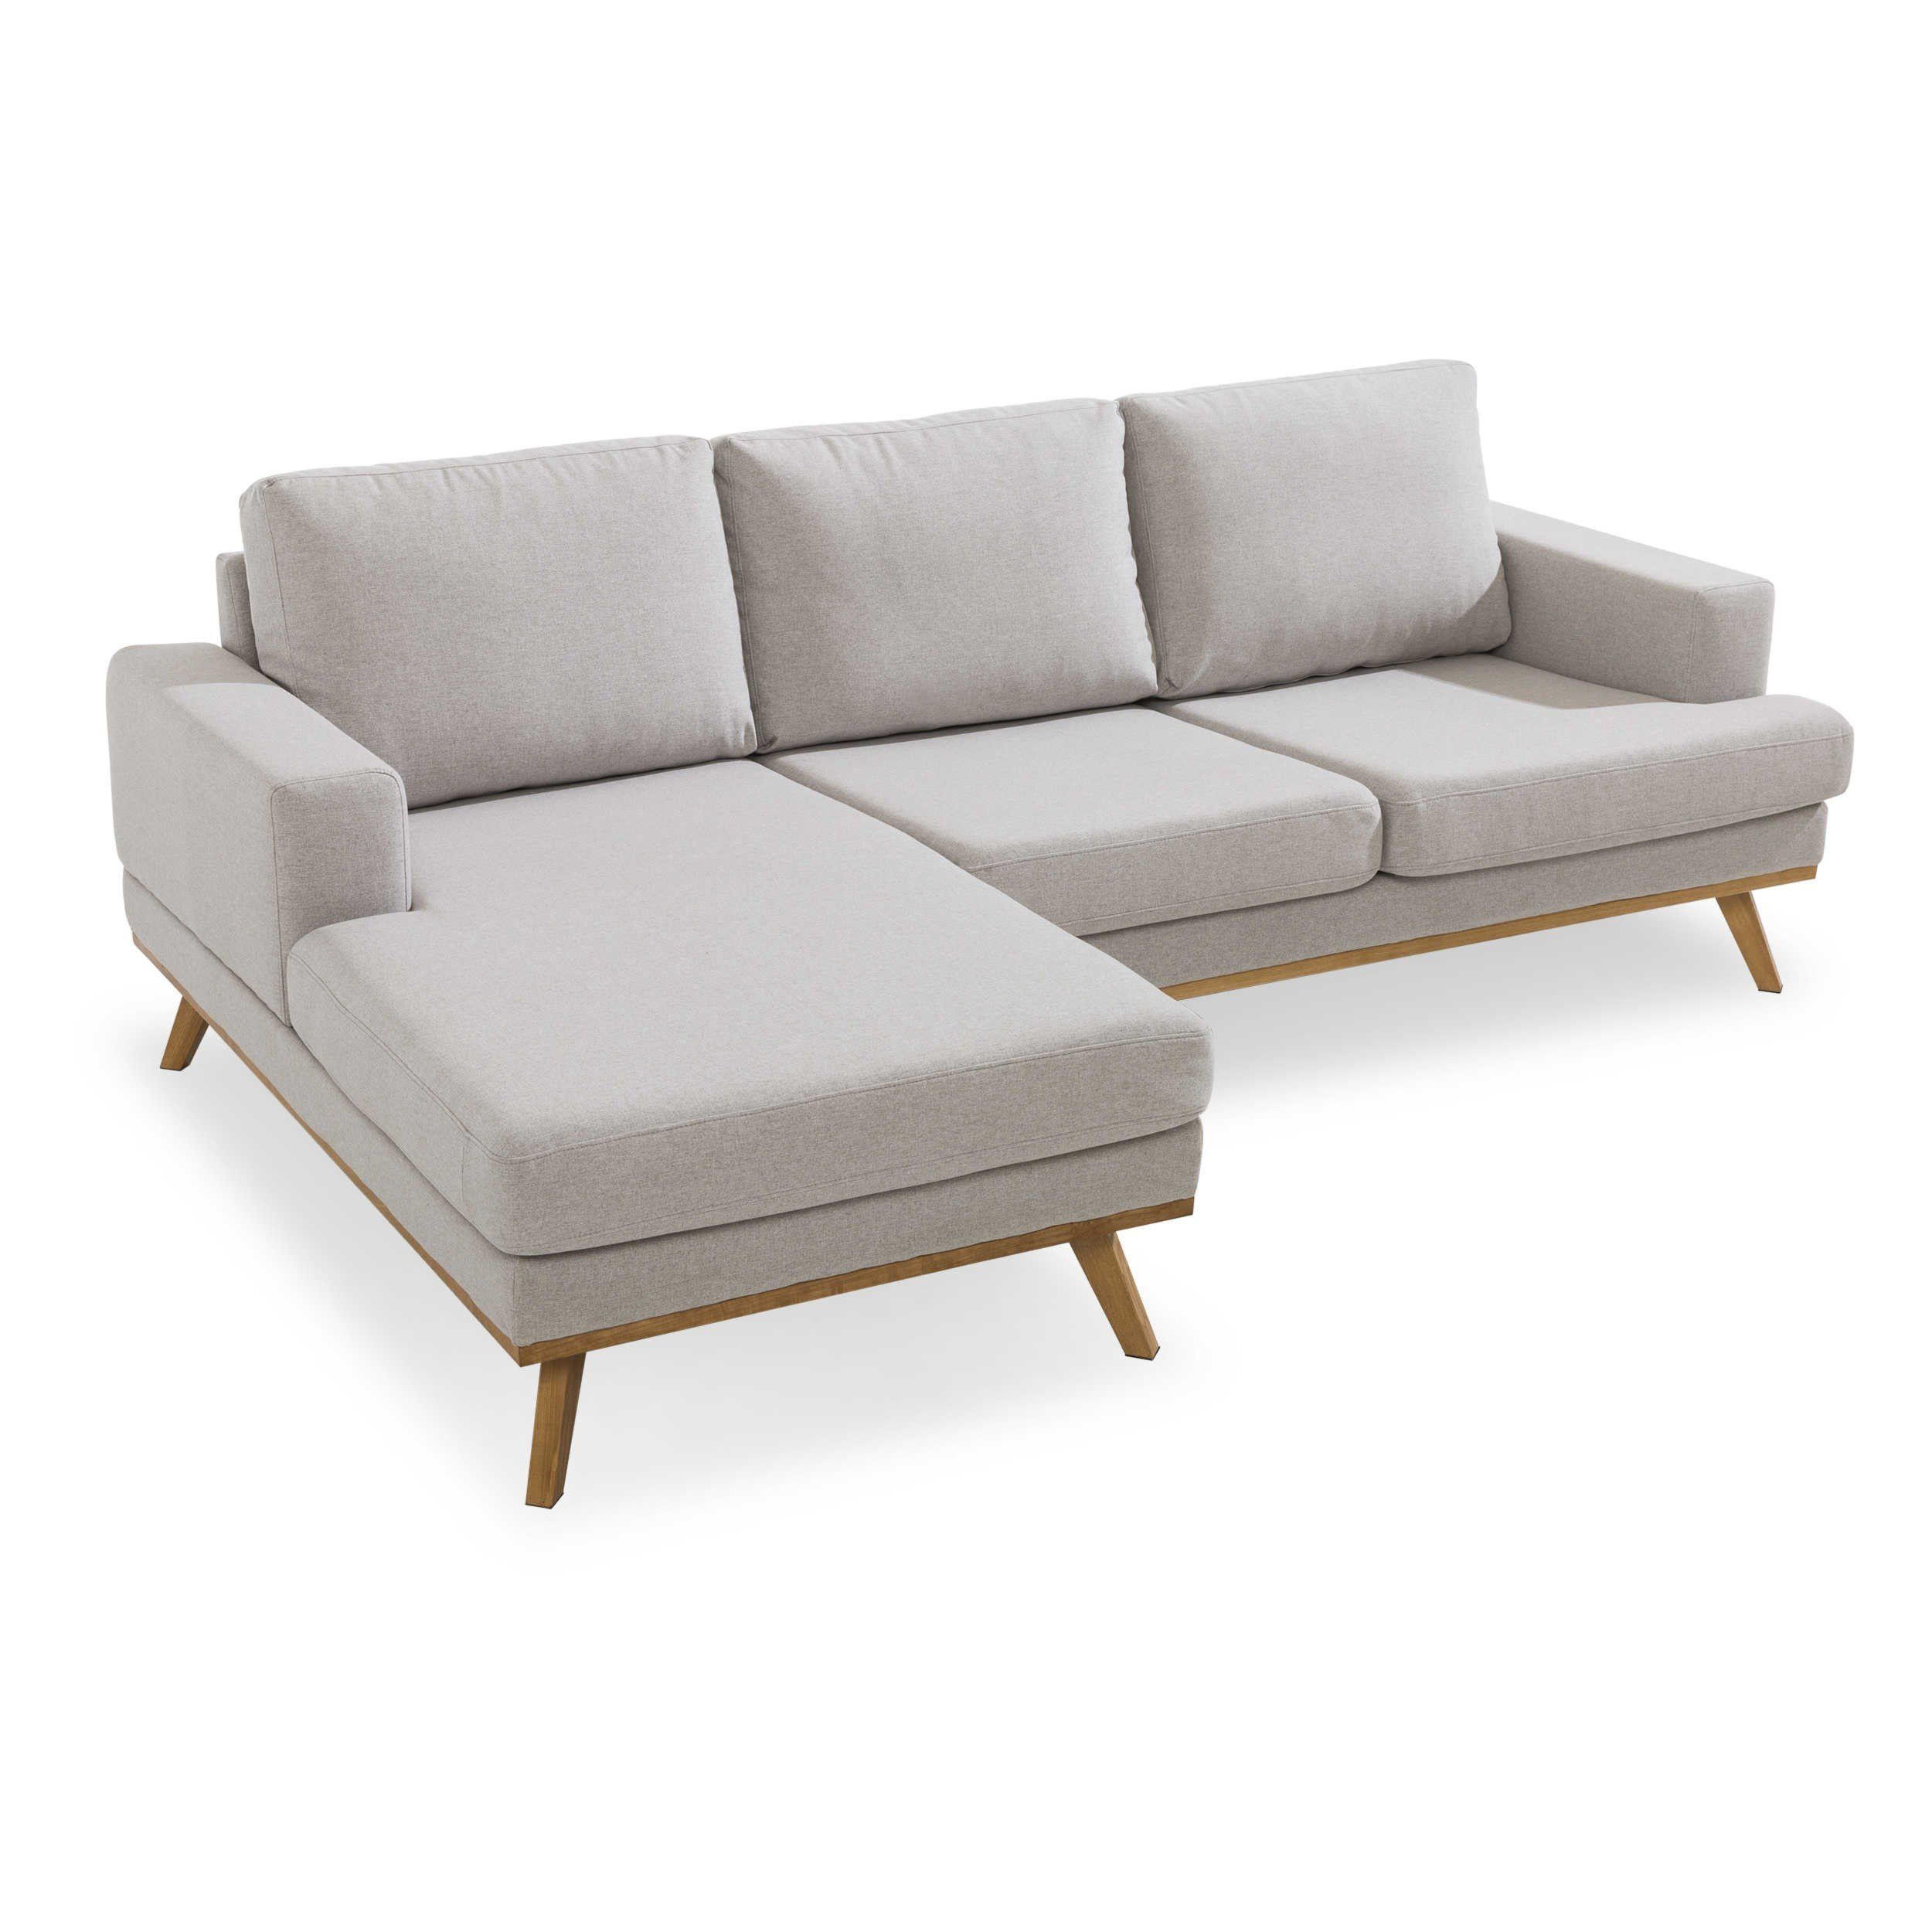 Eck Sofas Ecksofa Norwich In 2019 House Sofa Couch Und Furniture